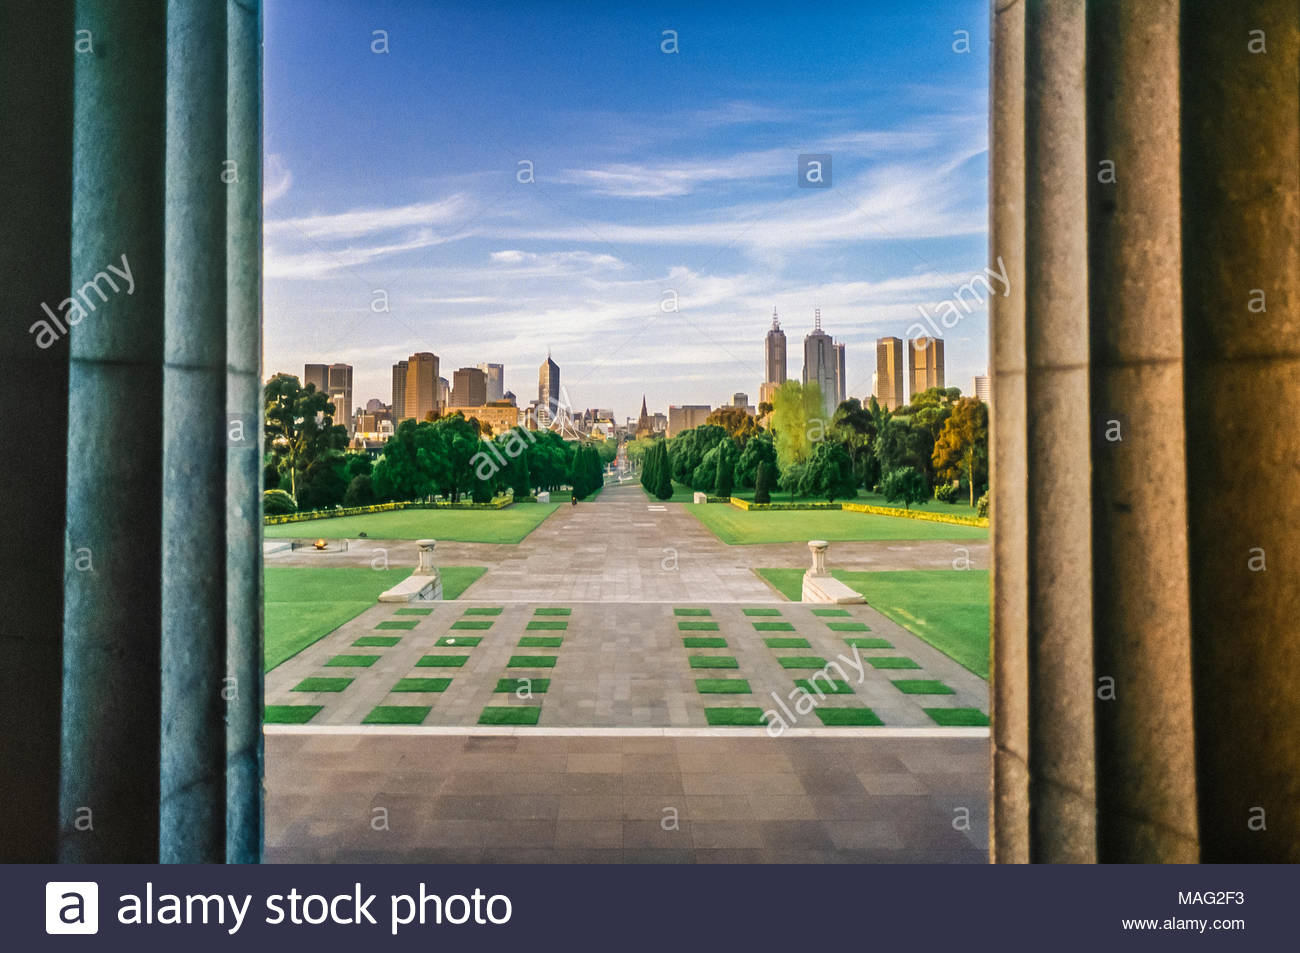 Looking down Ceremonial Avenue to the City of Melbourne, from the Shrine of Remembrance, Melbourne, Victoria, Australia - Stock Image